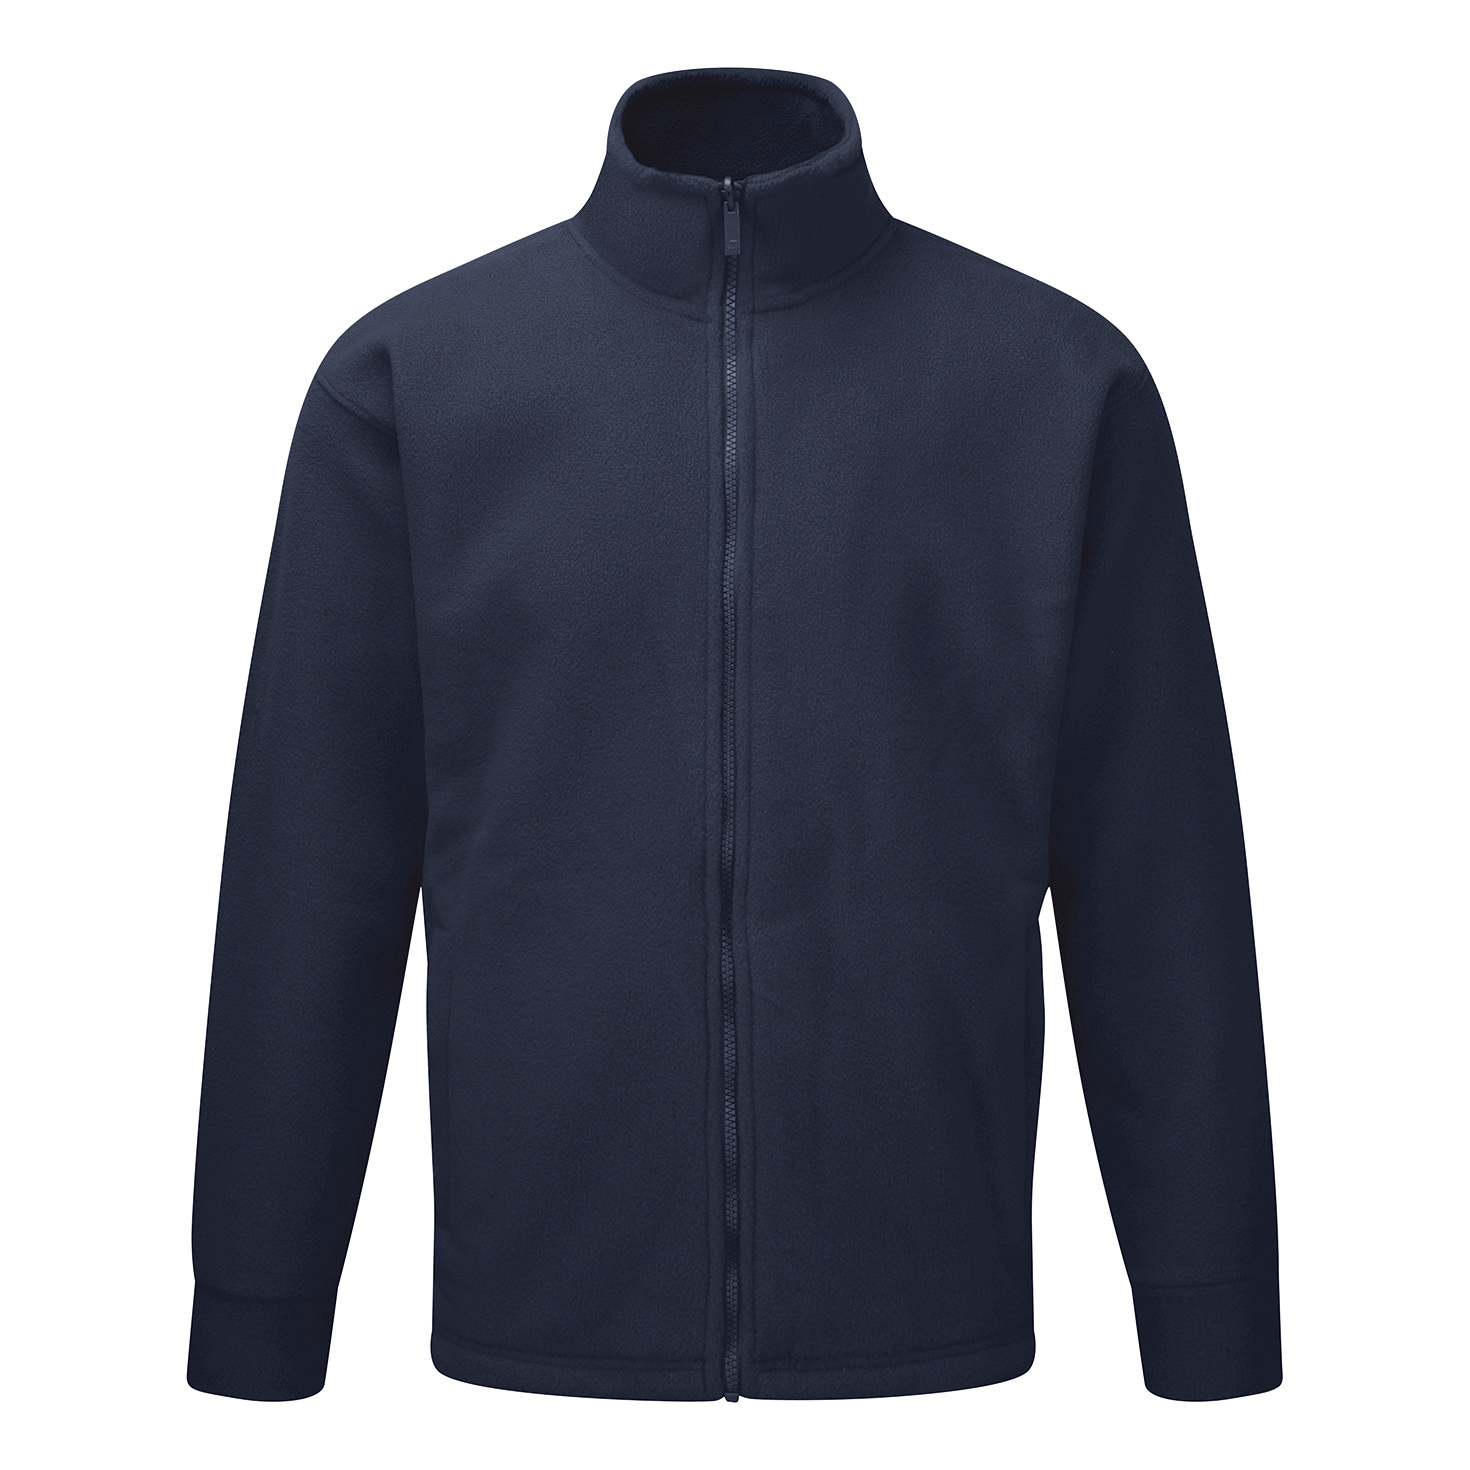 Basic Fleece Jacket Elasticated Cuffs and Full Zip Front XL Navy 1-3 Days Lead Time